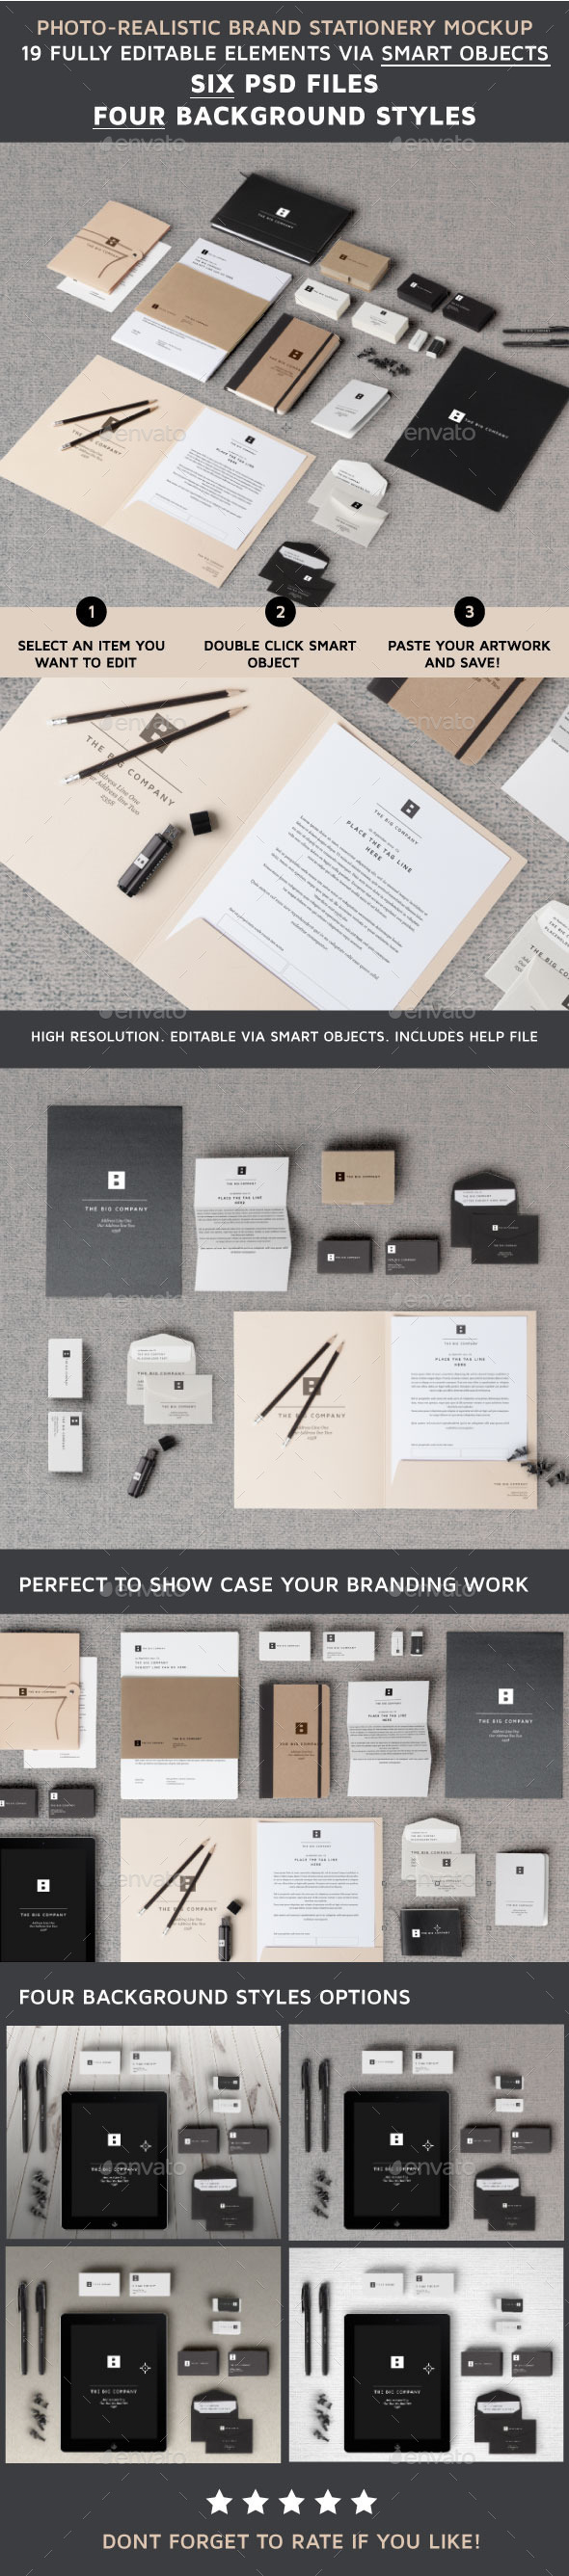 GraphicRiver Brand Stationery Mockup V1 9134952